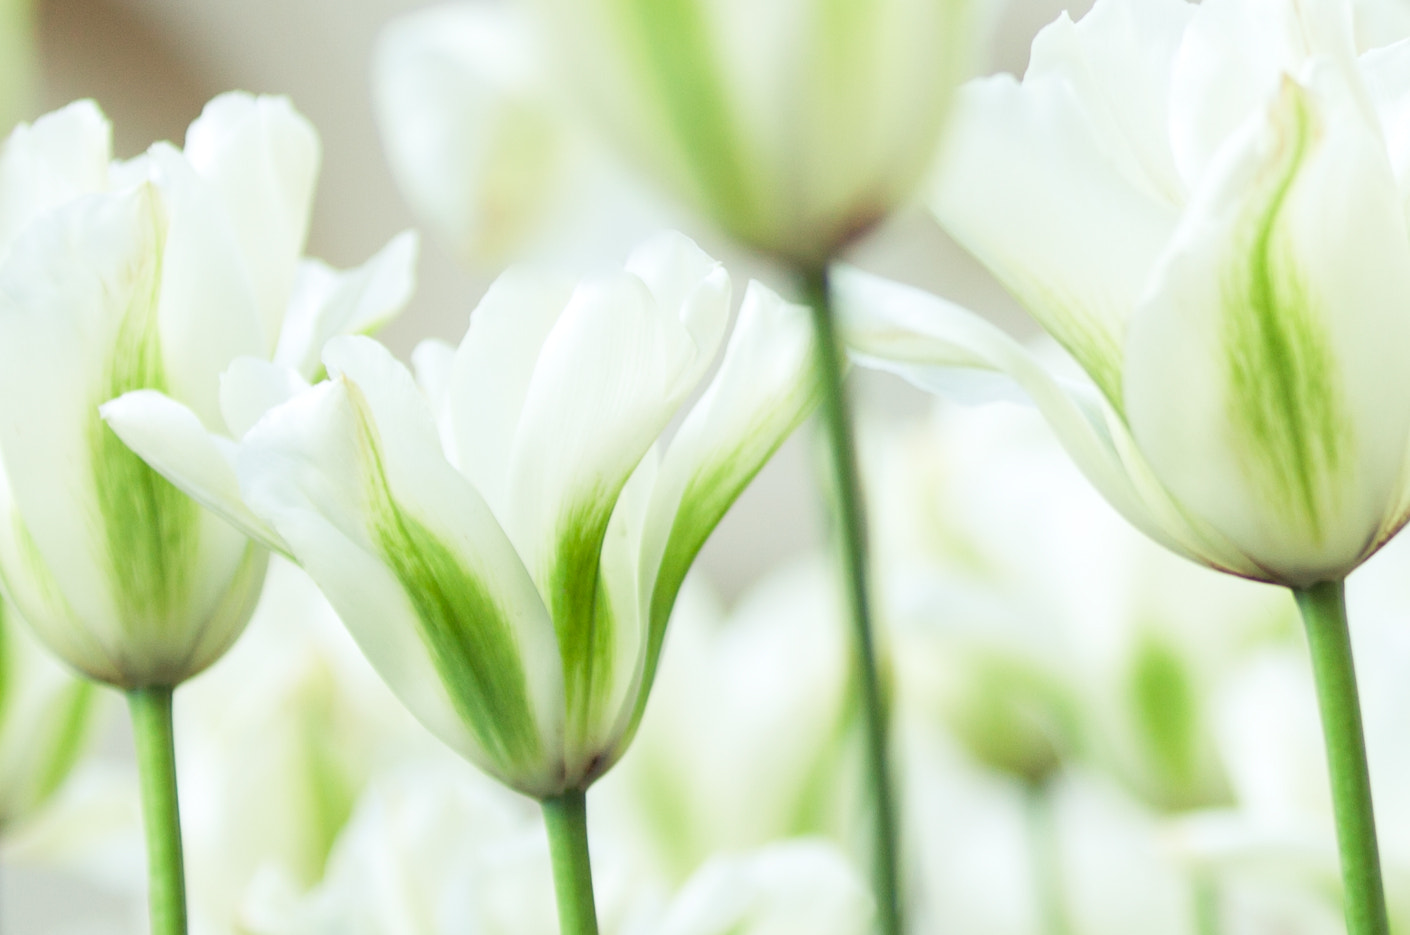 Photograph Flowers by Magdalena Jessica Krynicka on 500px